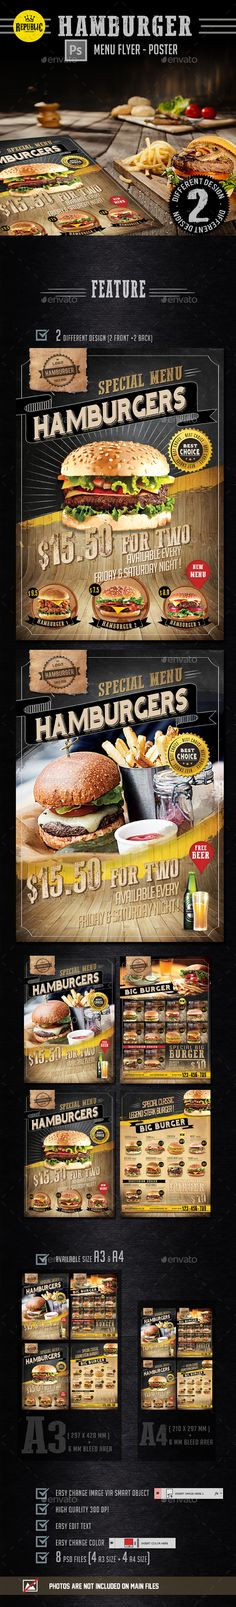 Hamburger Menu Flyer Template PSD. Download here: http://graphicriver.net/item/hamburger-menu-flyer/15474950?ref=ksioks